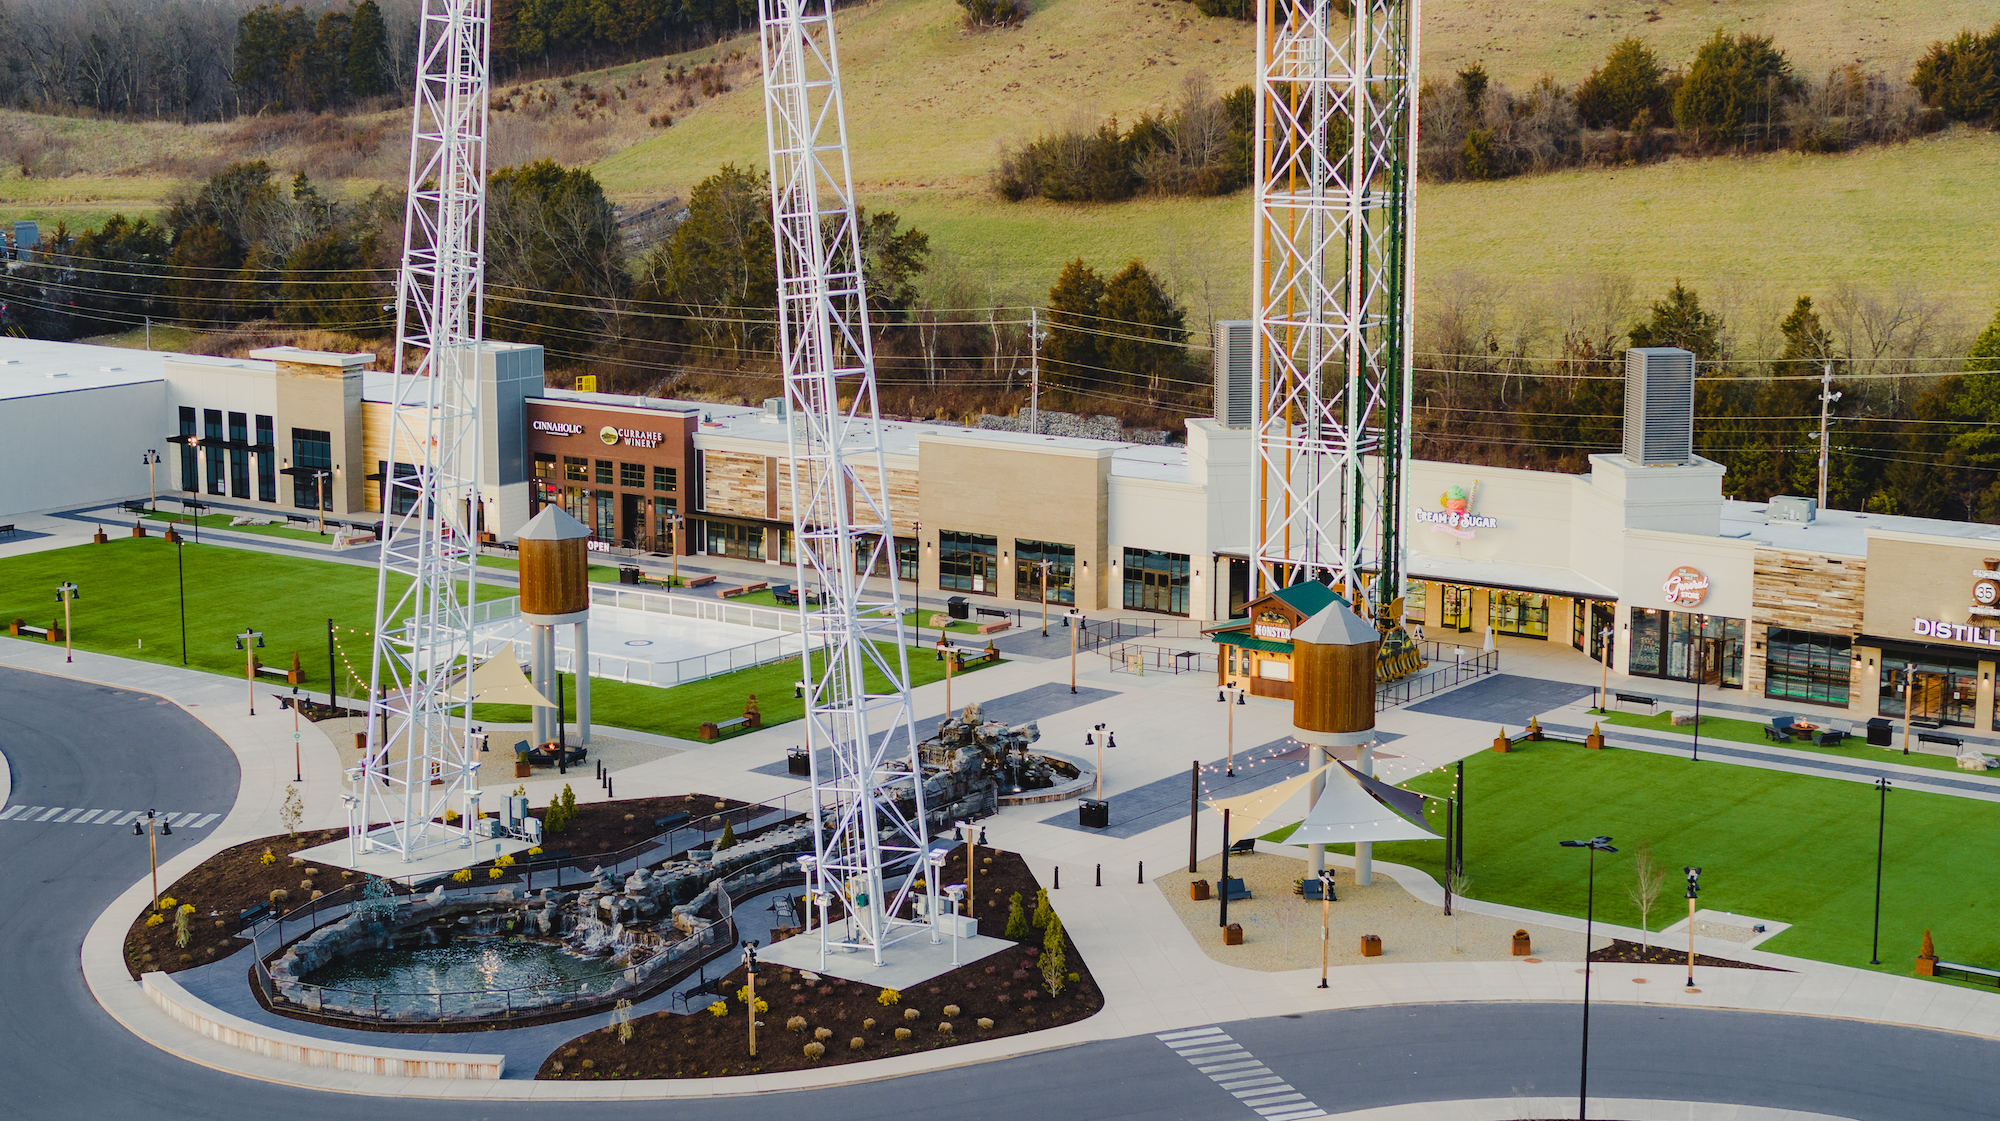 Drone Photo of the Mountain Mile Mall with the Mountain Monster in the center of the shot in Pigeon Forge Tennessee.